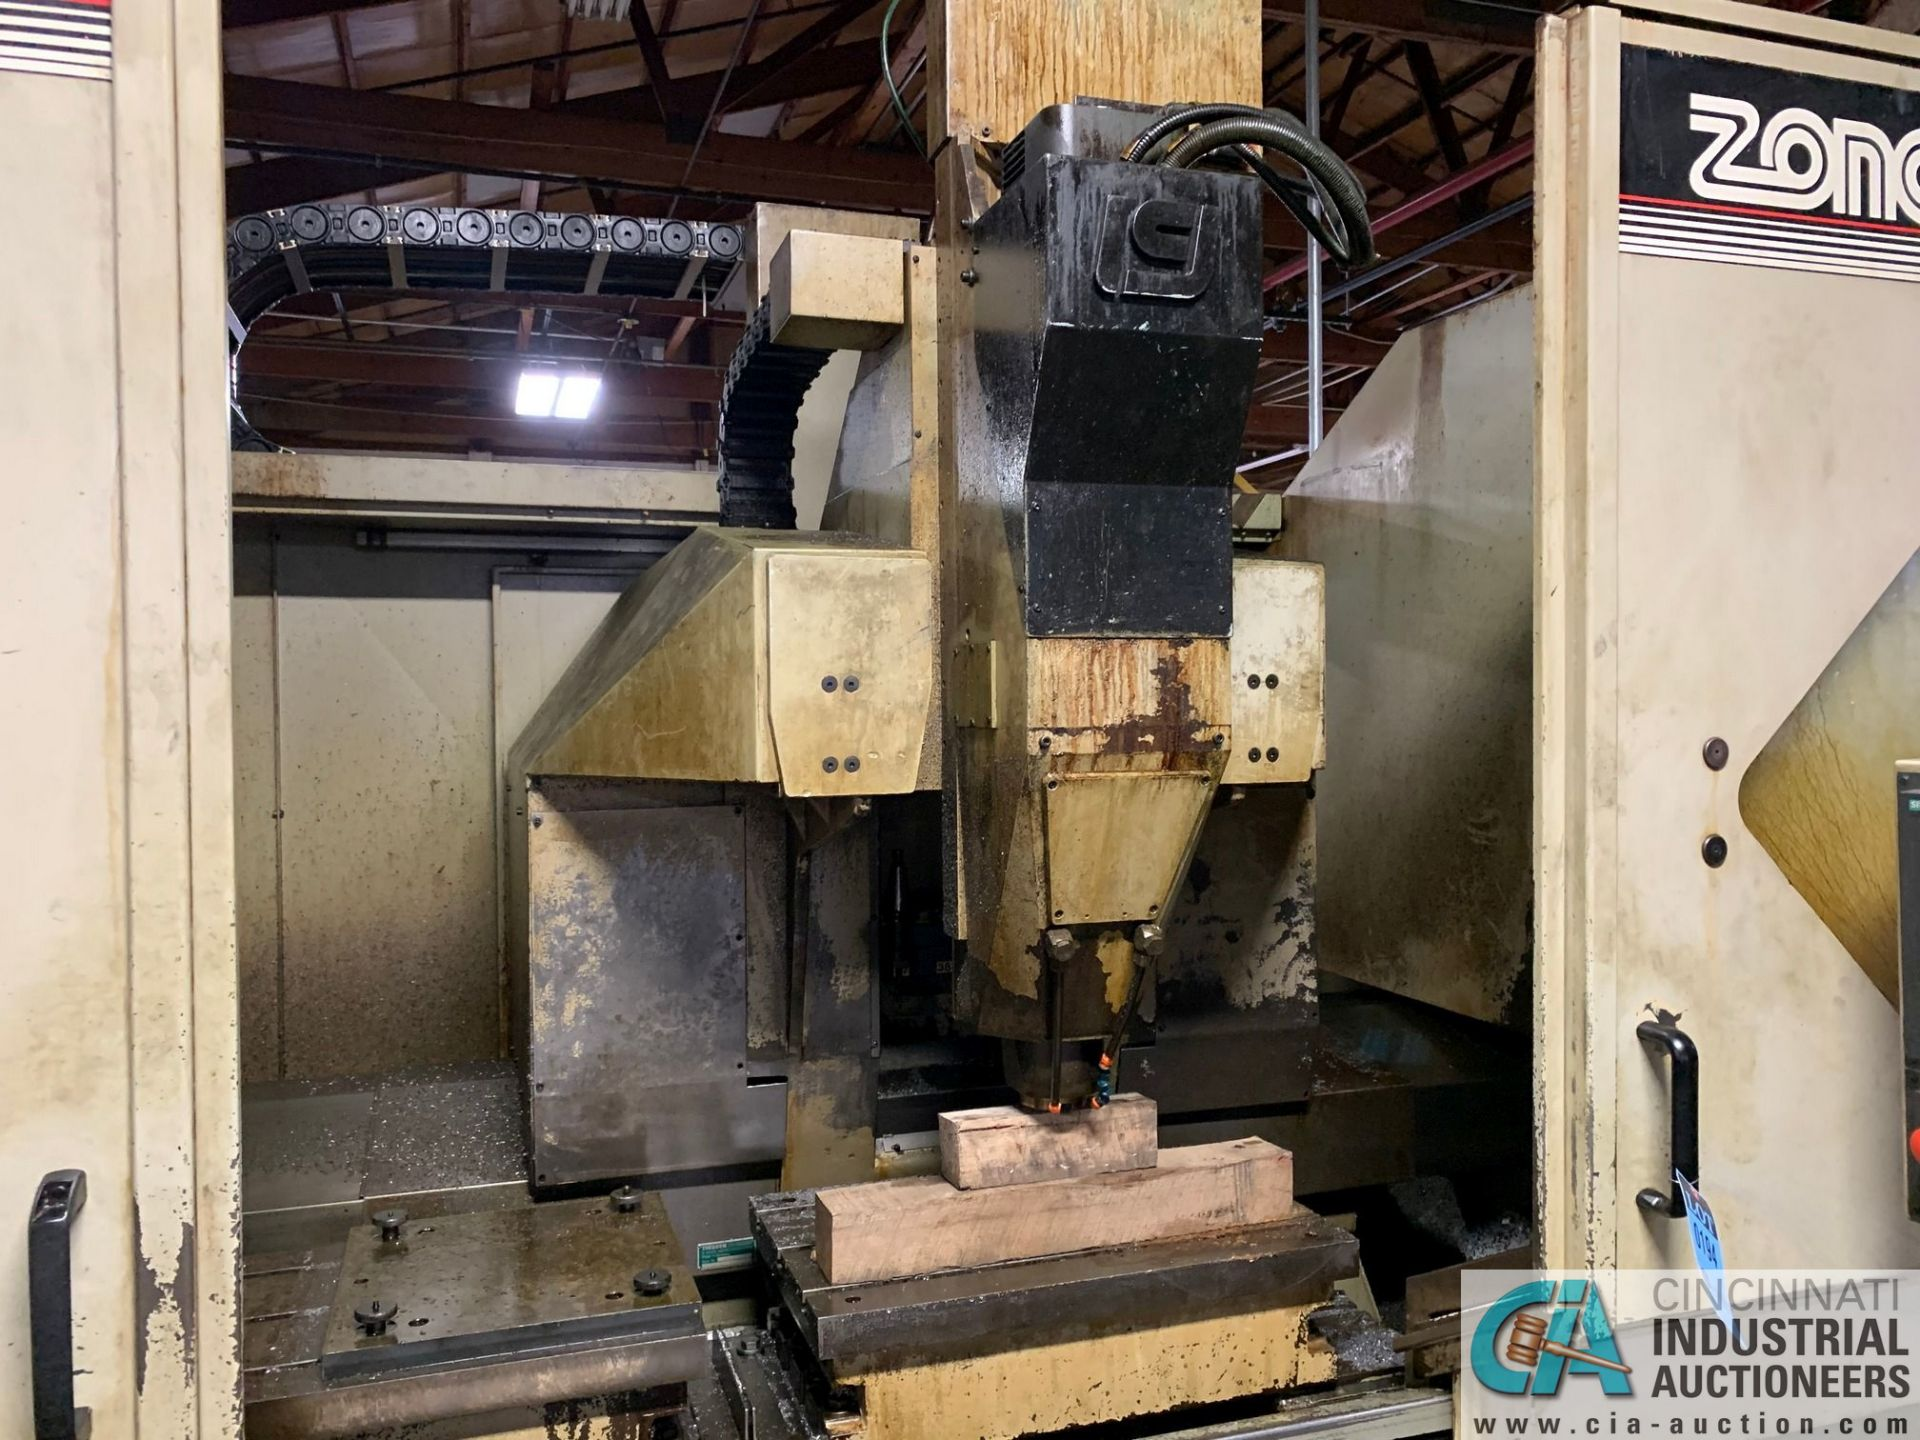 MONARCH UNISIGN TYPE UNIVERS 4 ZONALL 4 CNC VERTICAL MACHINING CENTER; S/N 99Z403, NO. 4293, - Image 2 of 13